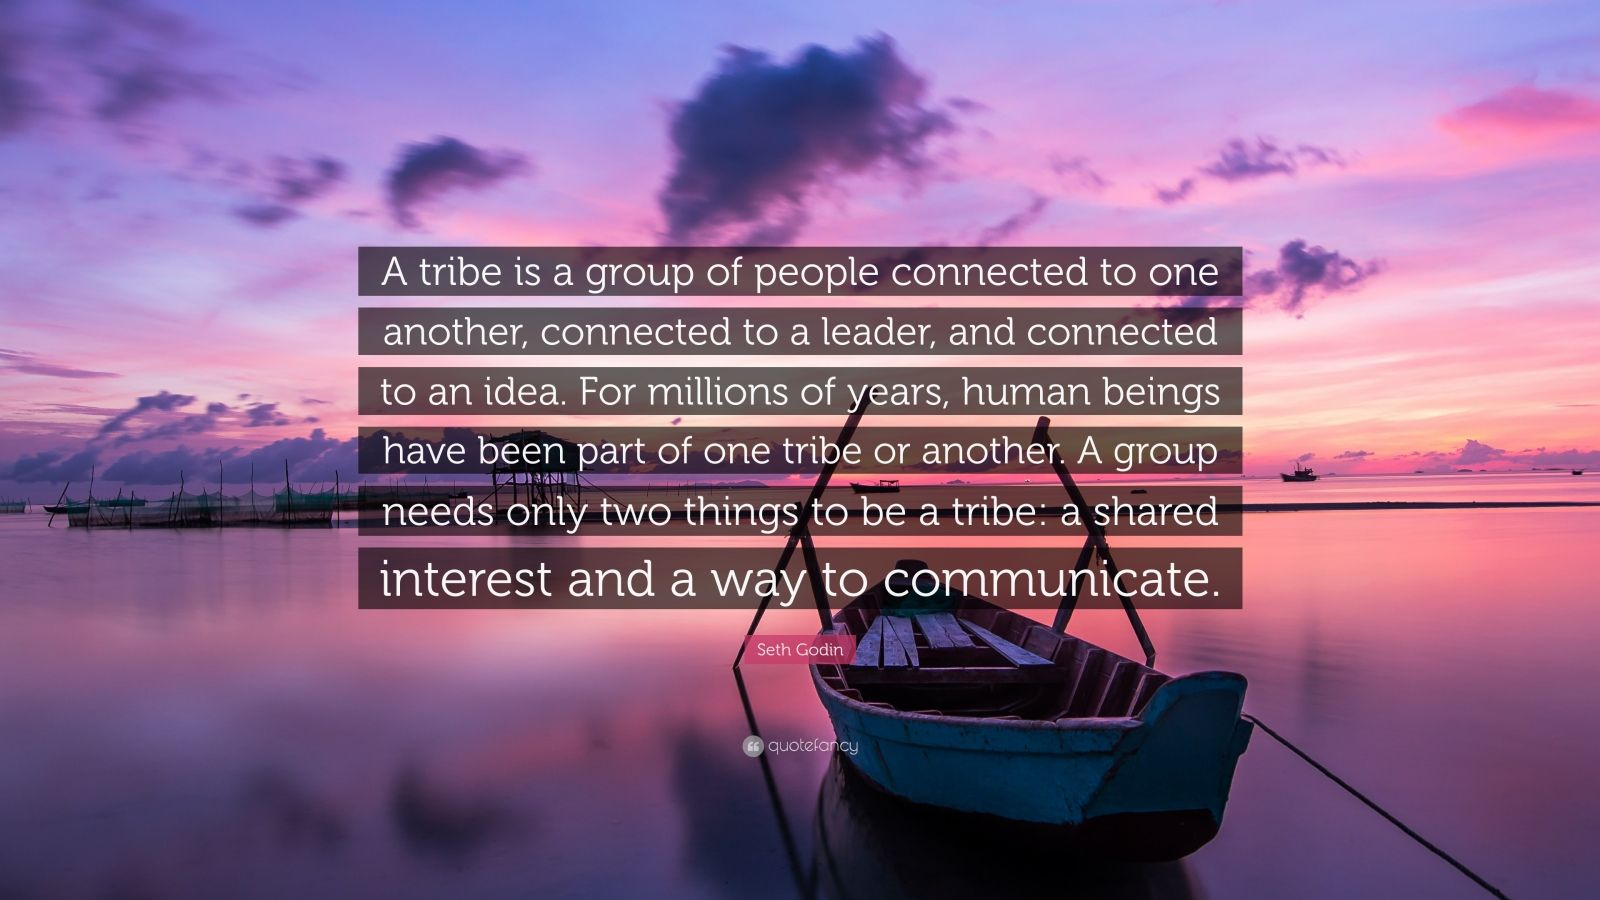 """Seth Godin Quote: """"A tribe is a group of people connected to one another, connected to a leader, and connected to an idea. For millions of years, human beings have been part of one tribe or another. A group needs only two things to be a tribe: a shared interest and a way to communicate."""""""